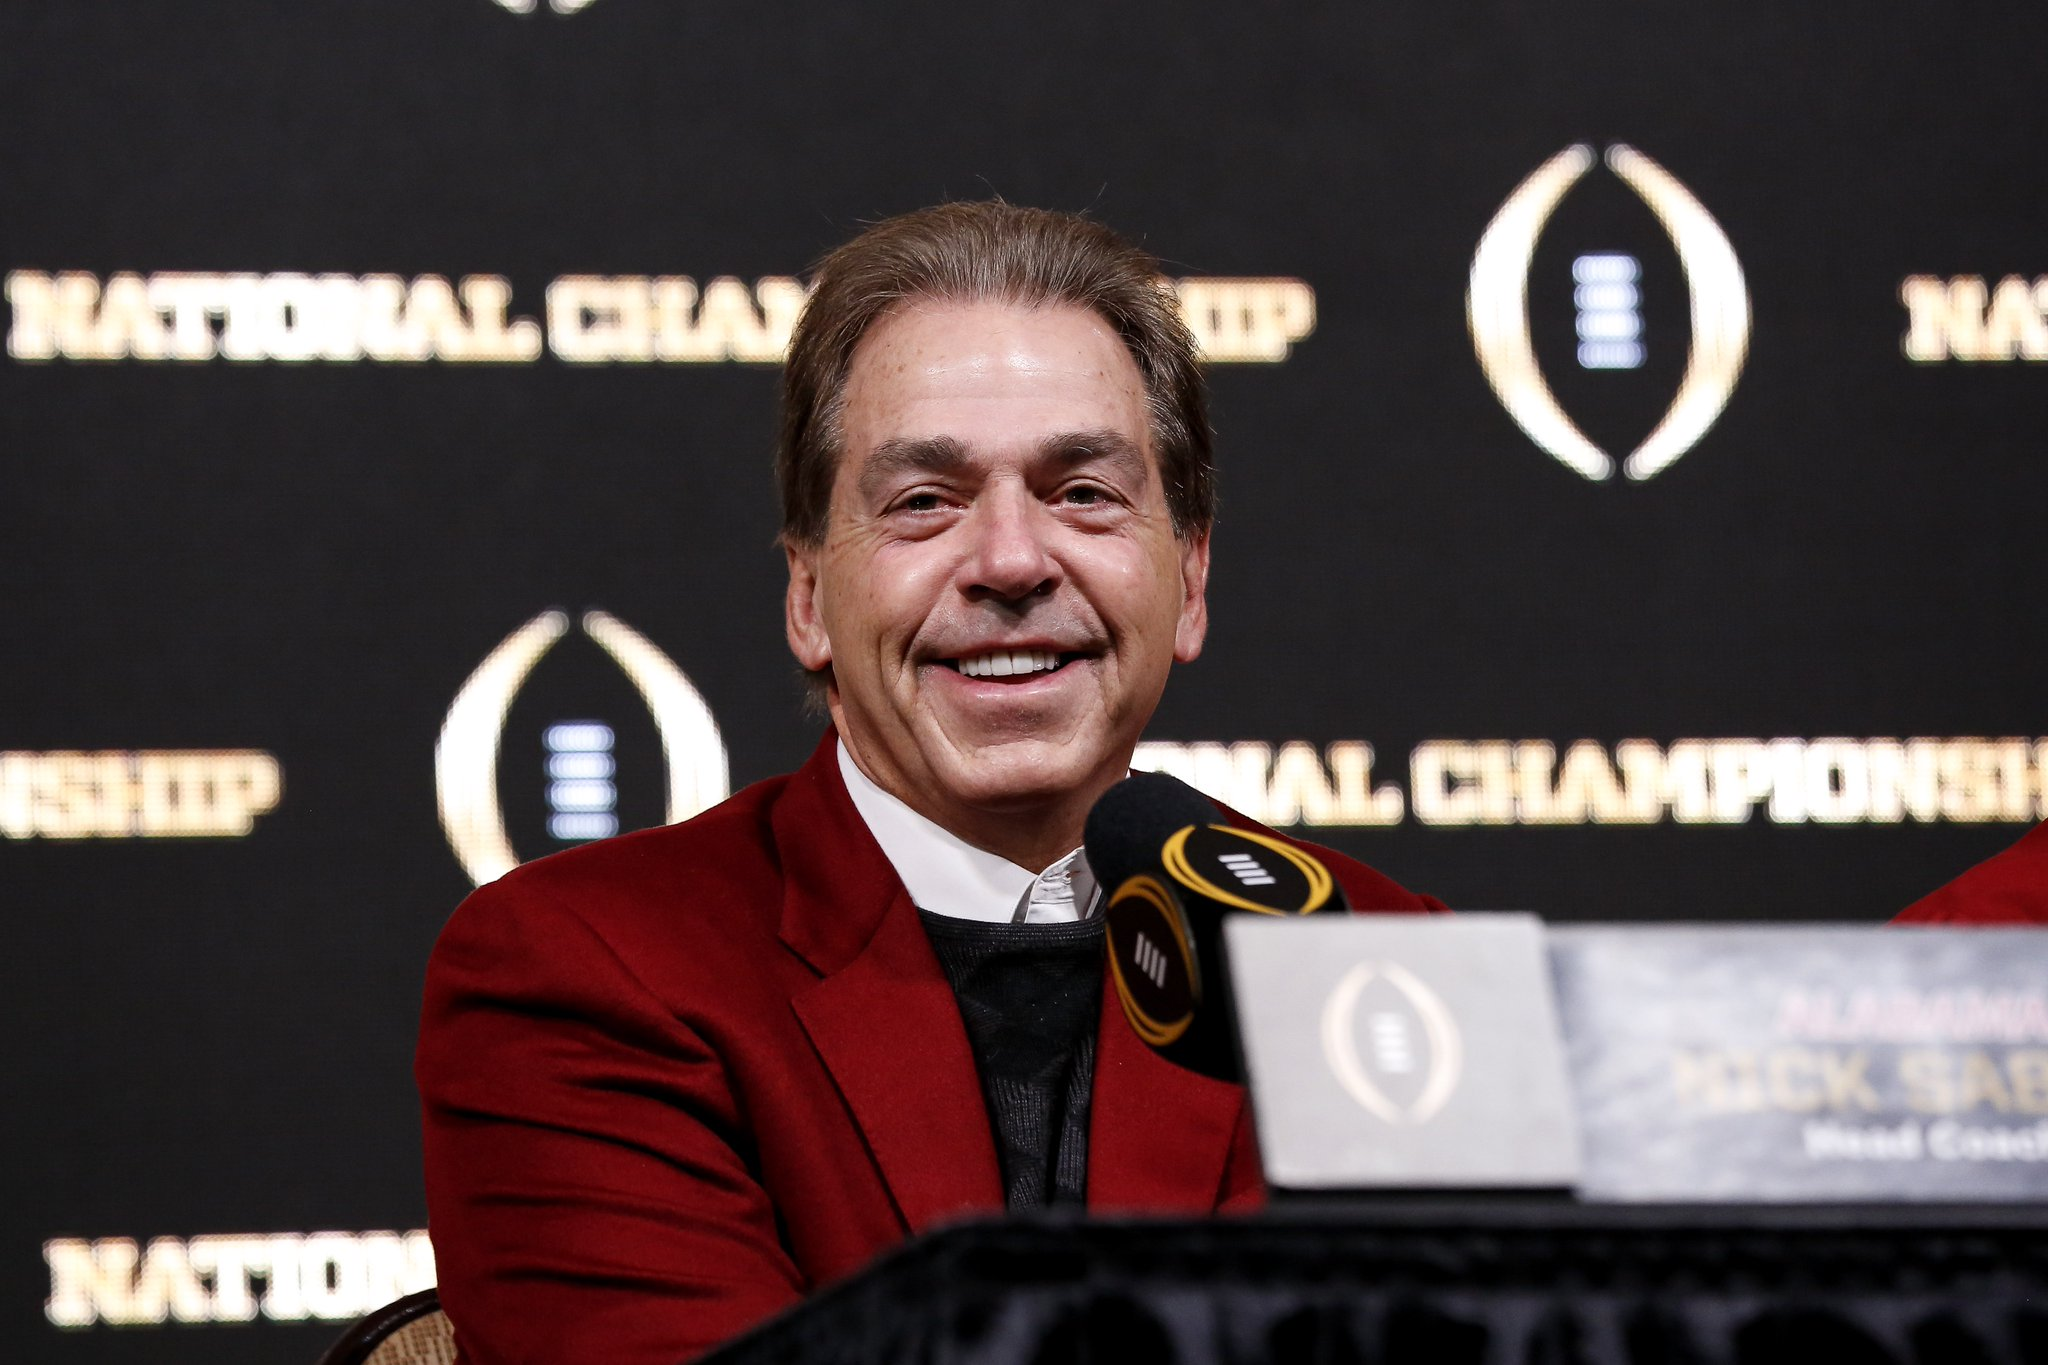 Bama breaks school, SEC record with 11th player drafted https://t.co/agabYlyQp4